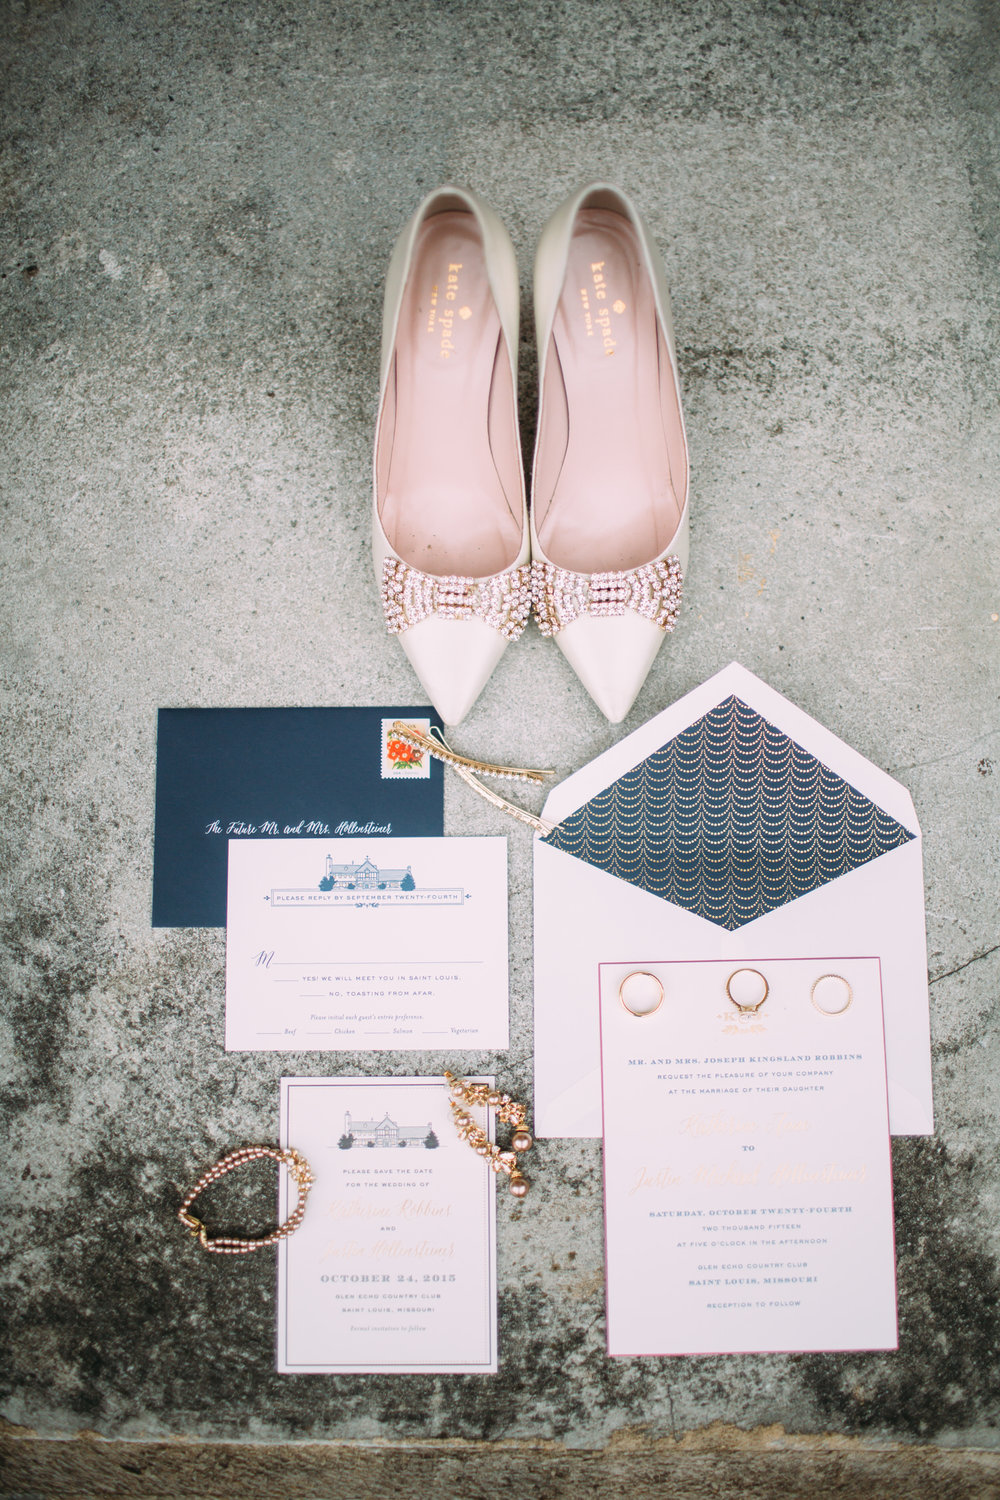 Wedding day details, St Louis Wedding Photographer